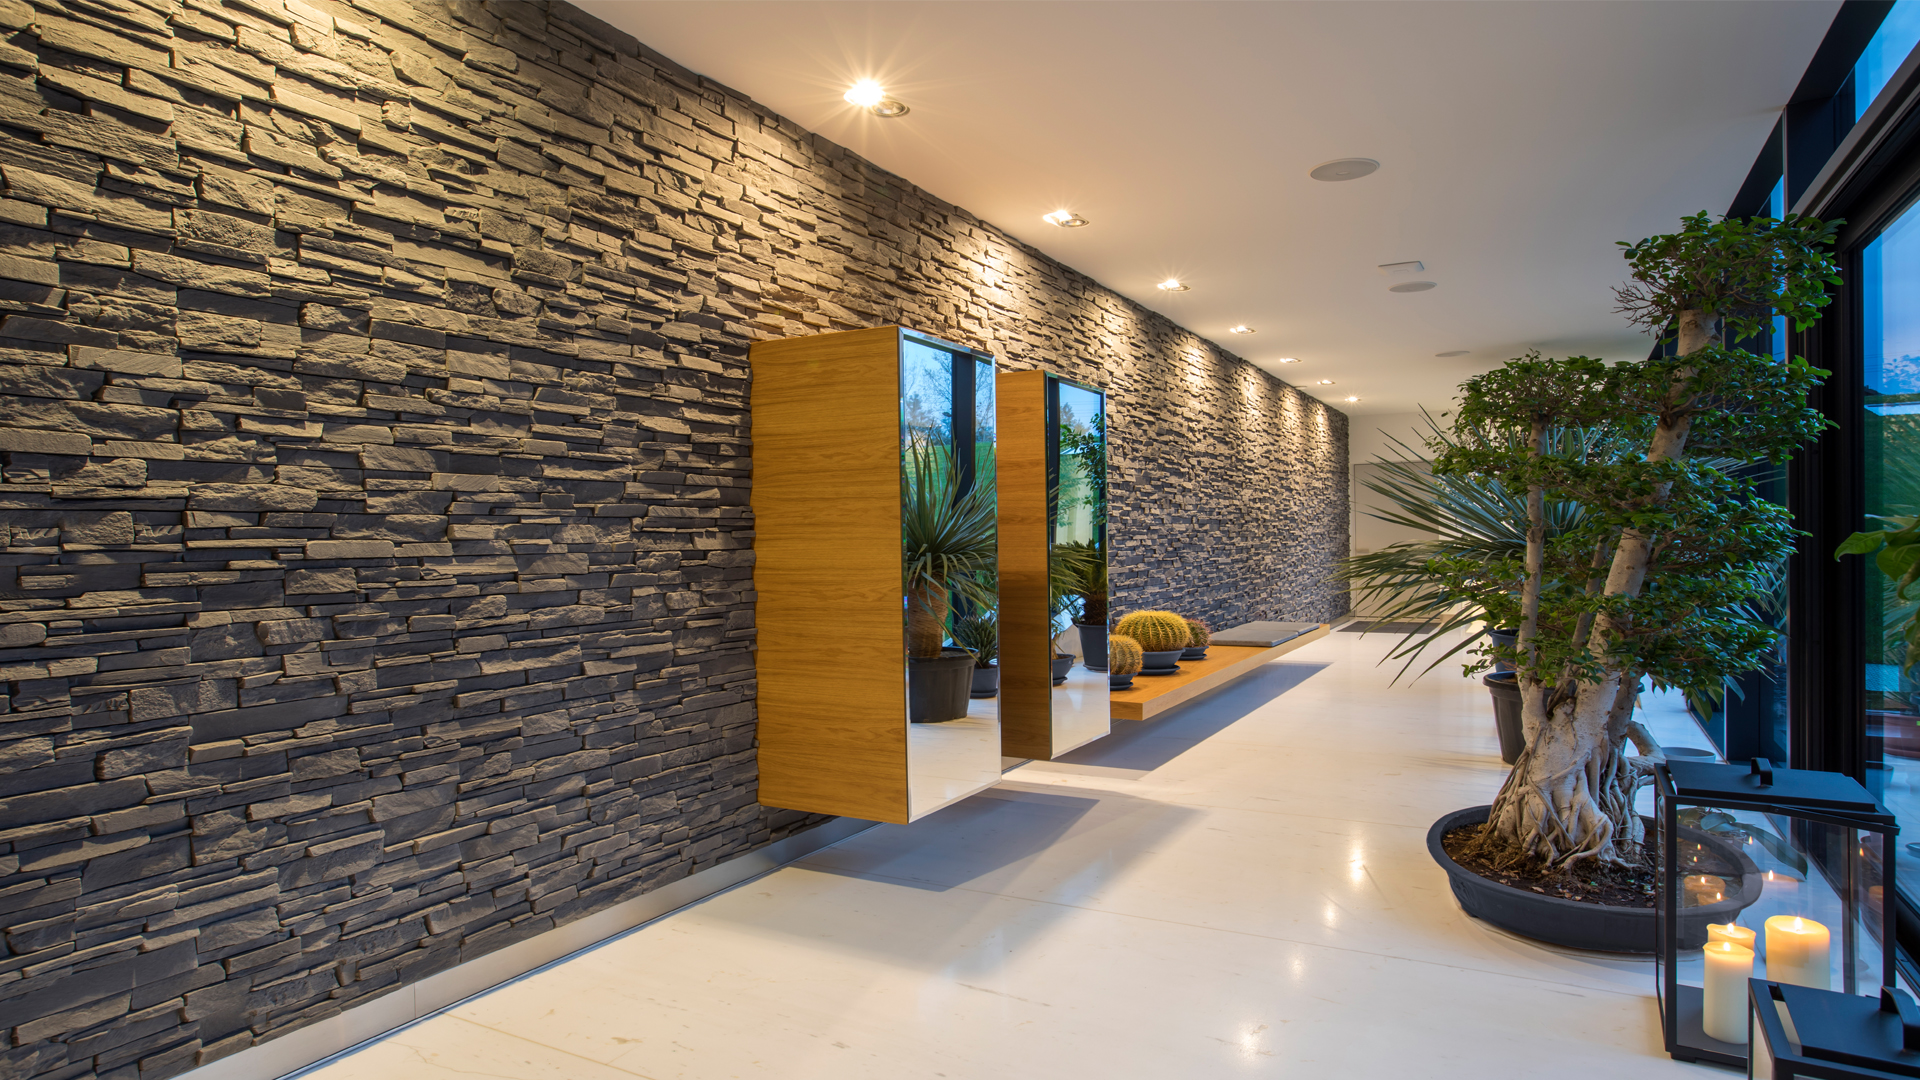 4 Ways To Customise A Home With Interior Wall Cladding ...